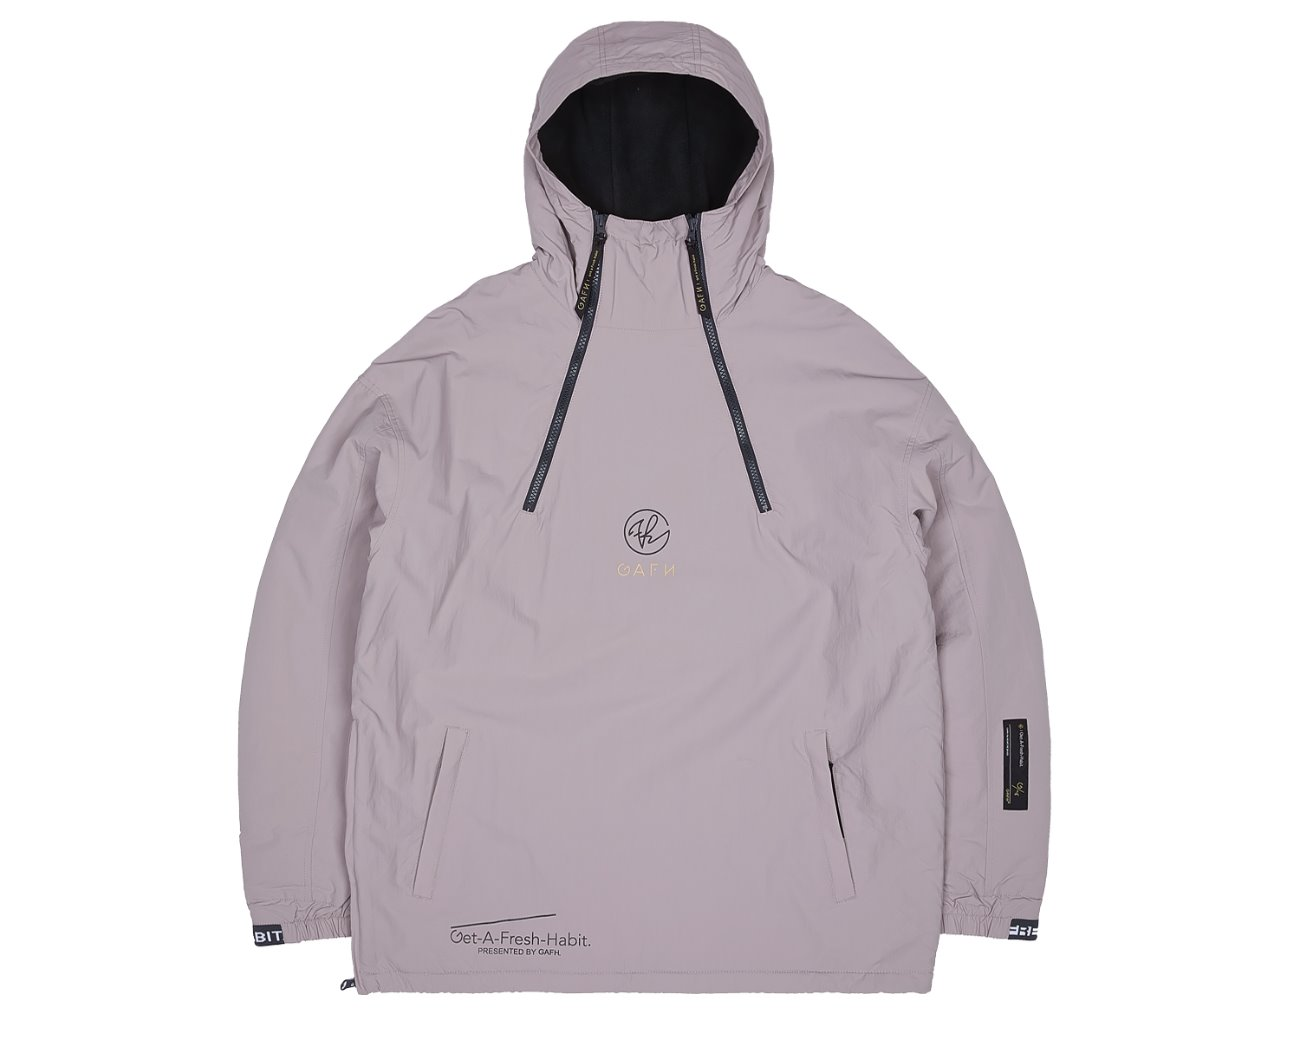 DOUBLE ZIP UP PULLOVER BARK / GAFH